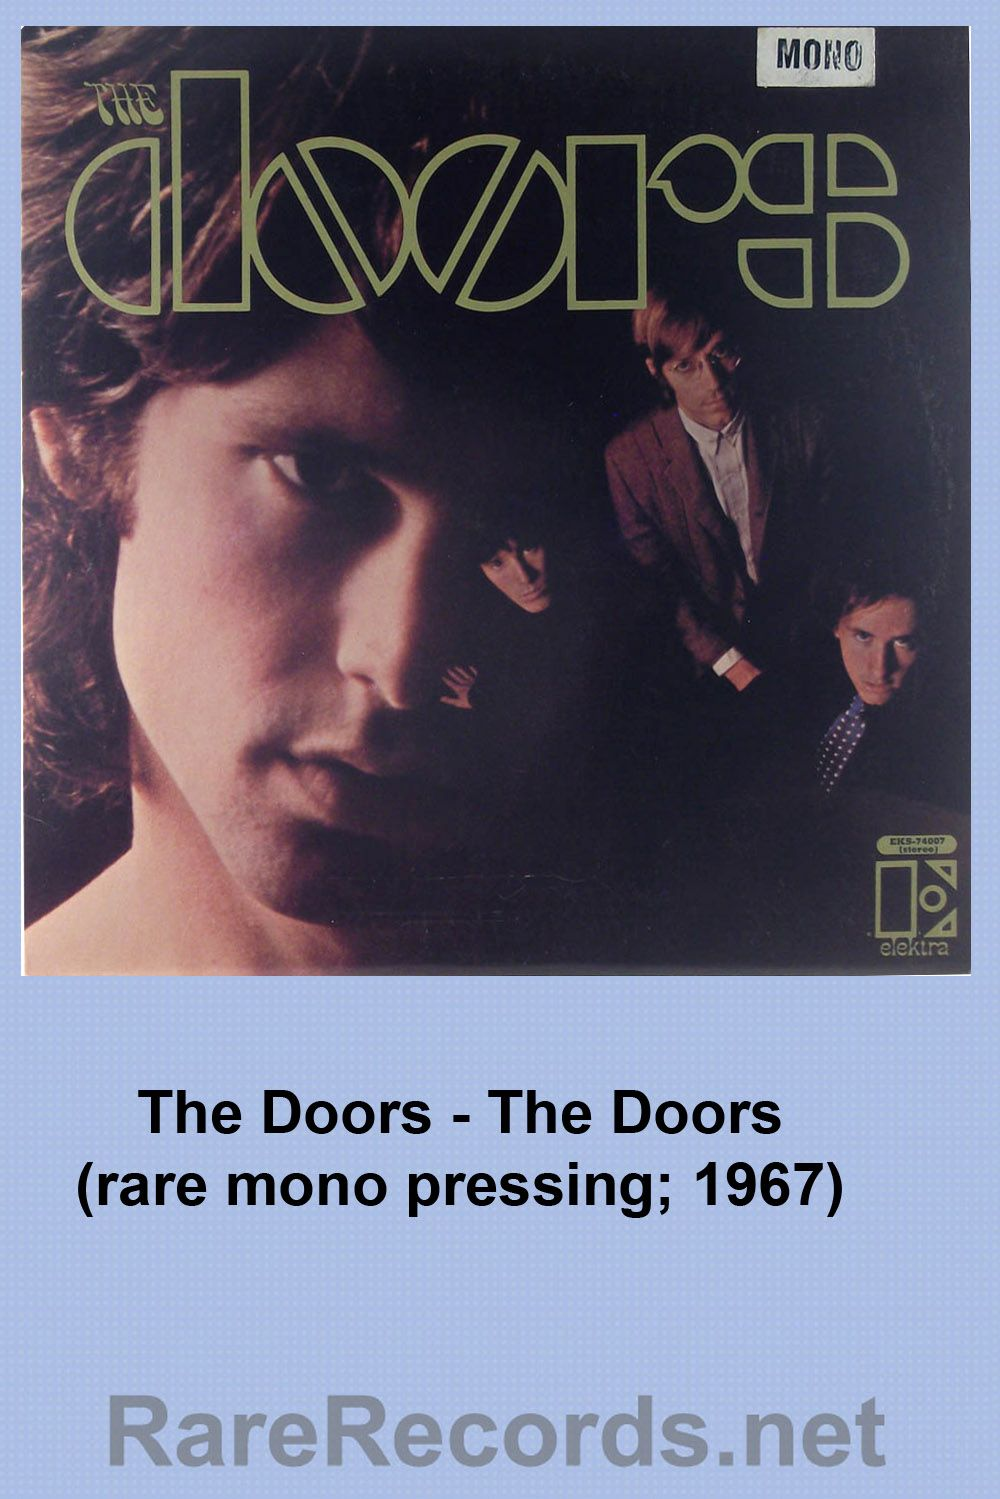 Rare mono pressing of the Doors self-titled first album. Released in 1967  sc 1 st  Pinterest & Rare mono pressing of the Doors self-titled first album. Released in ...